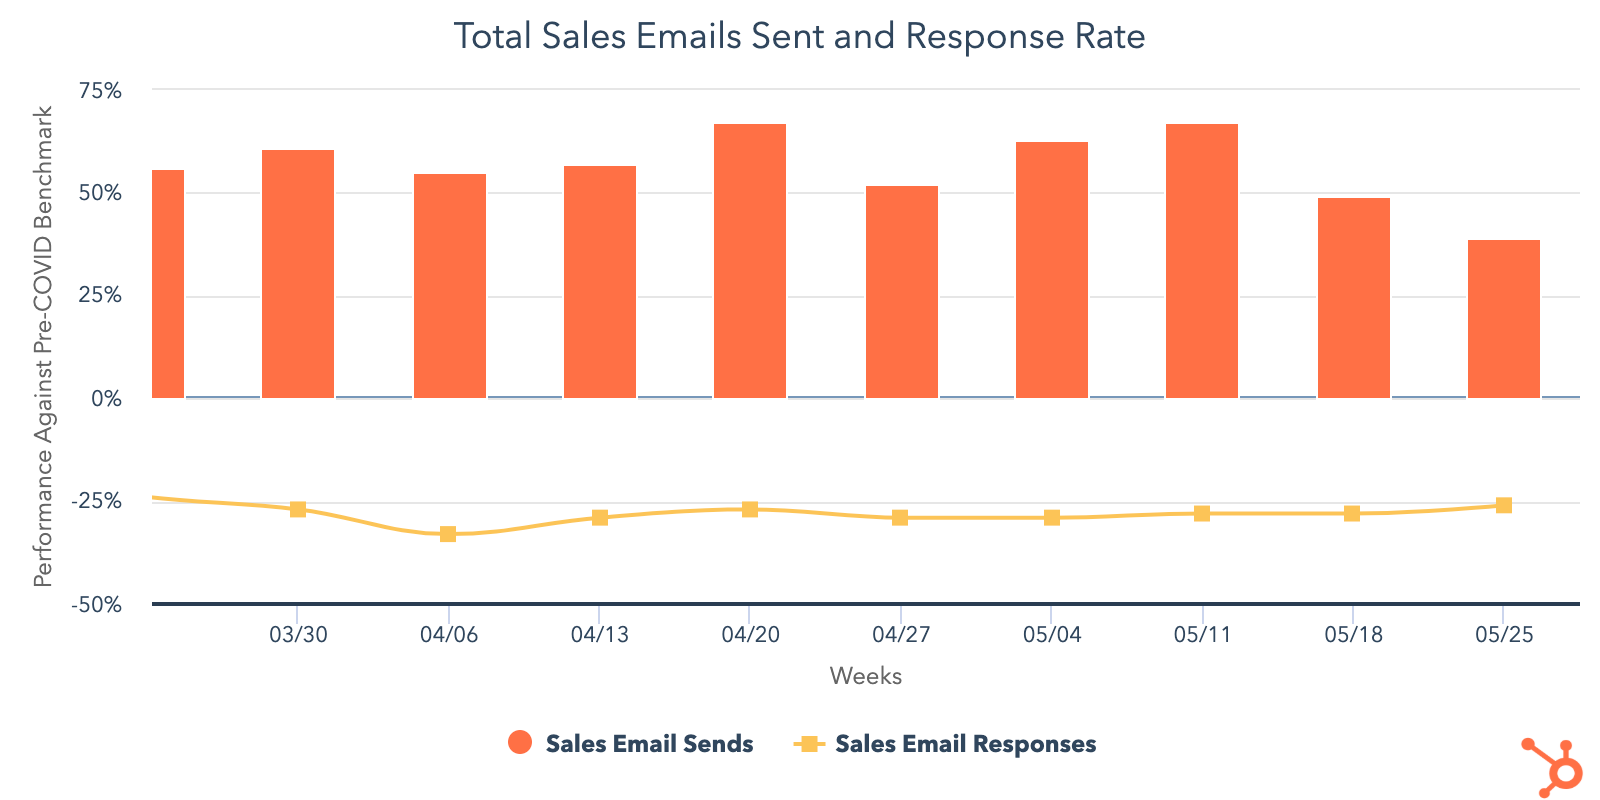 Total-sales-emails-sent-response